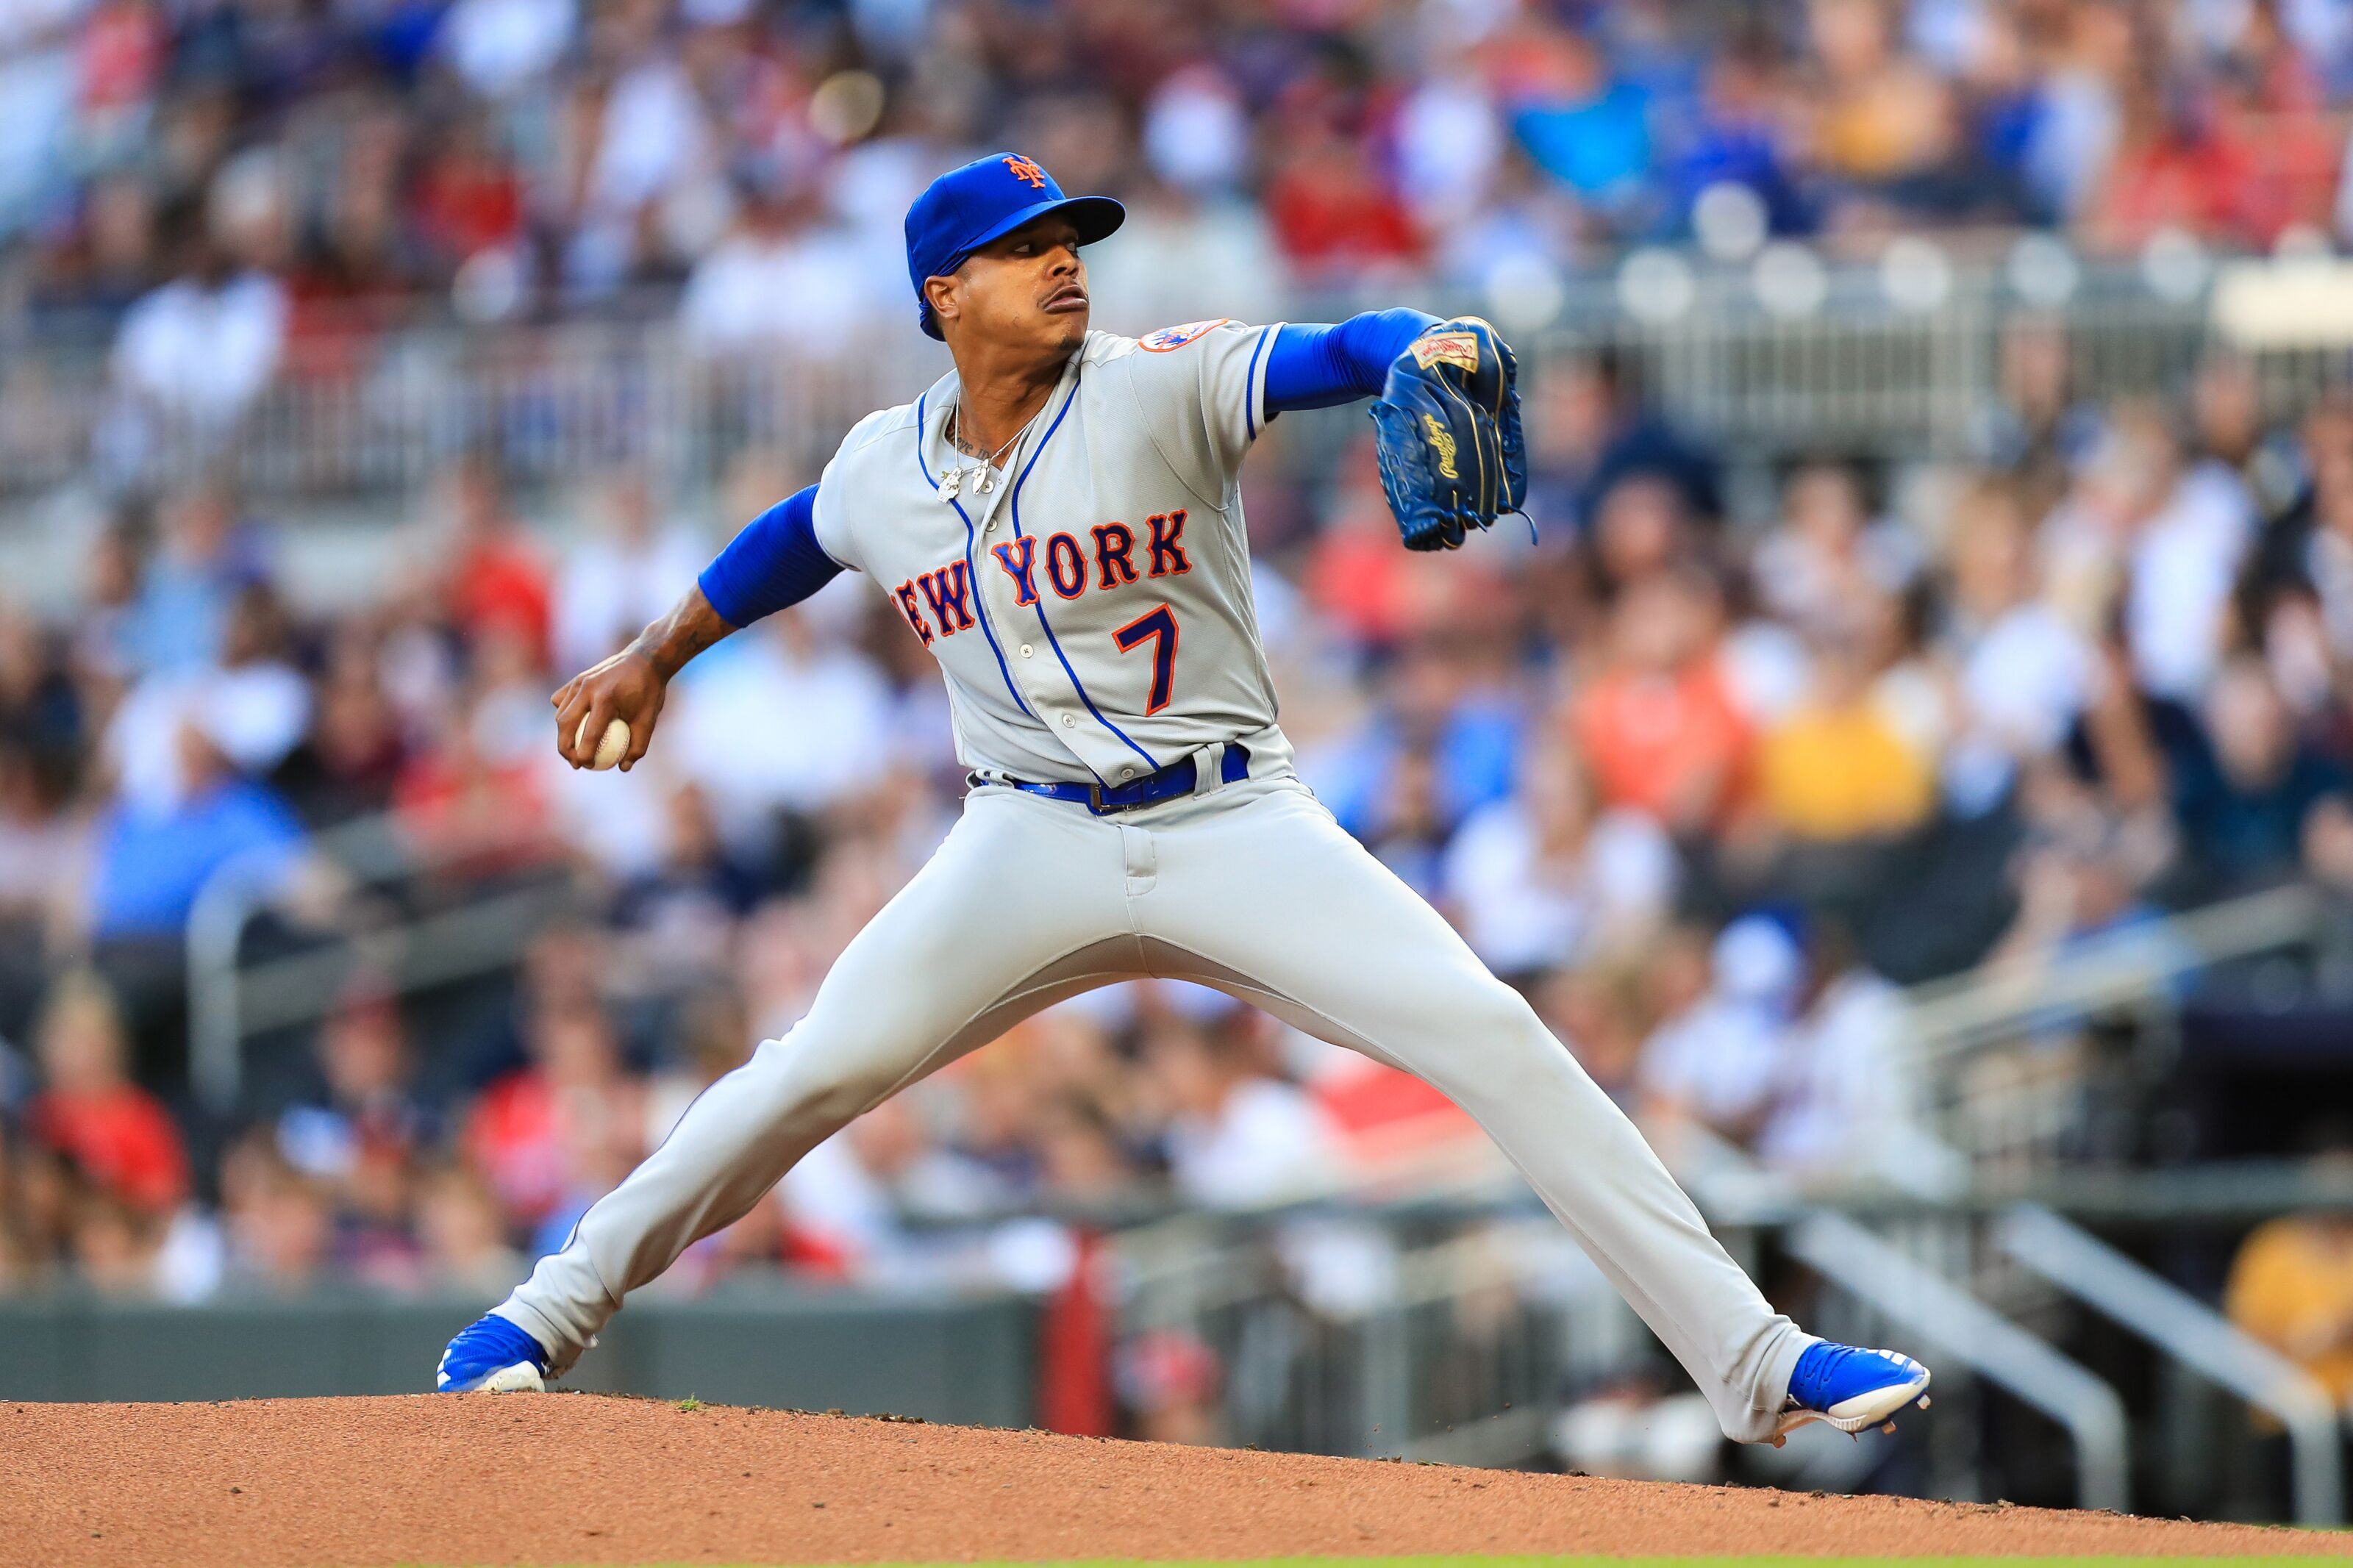 Marcus Stroman gets his first win as a New York Met